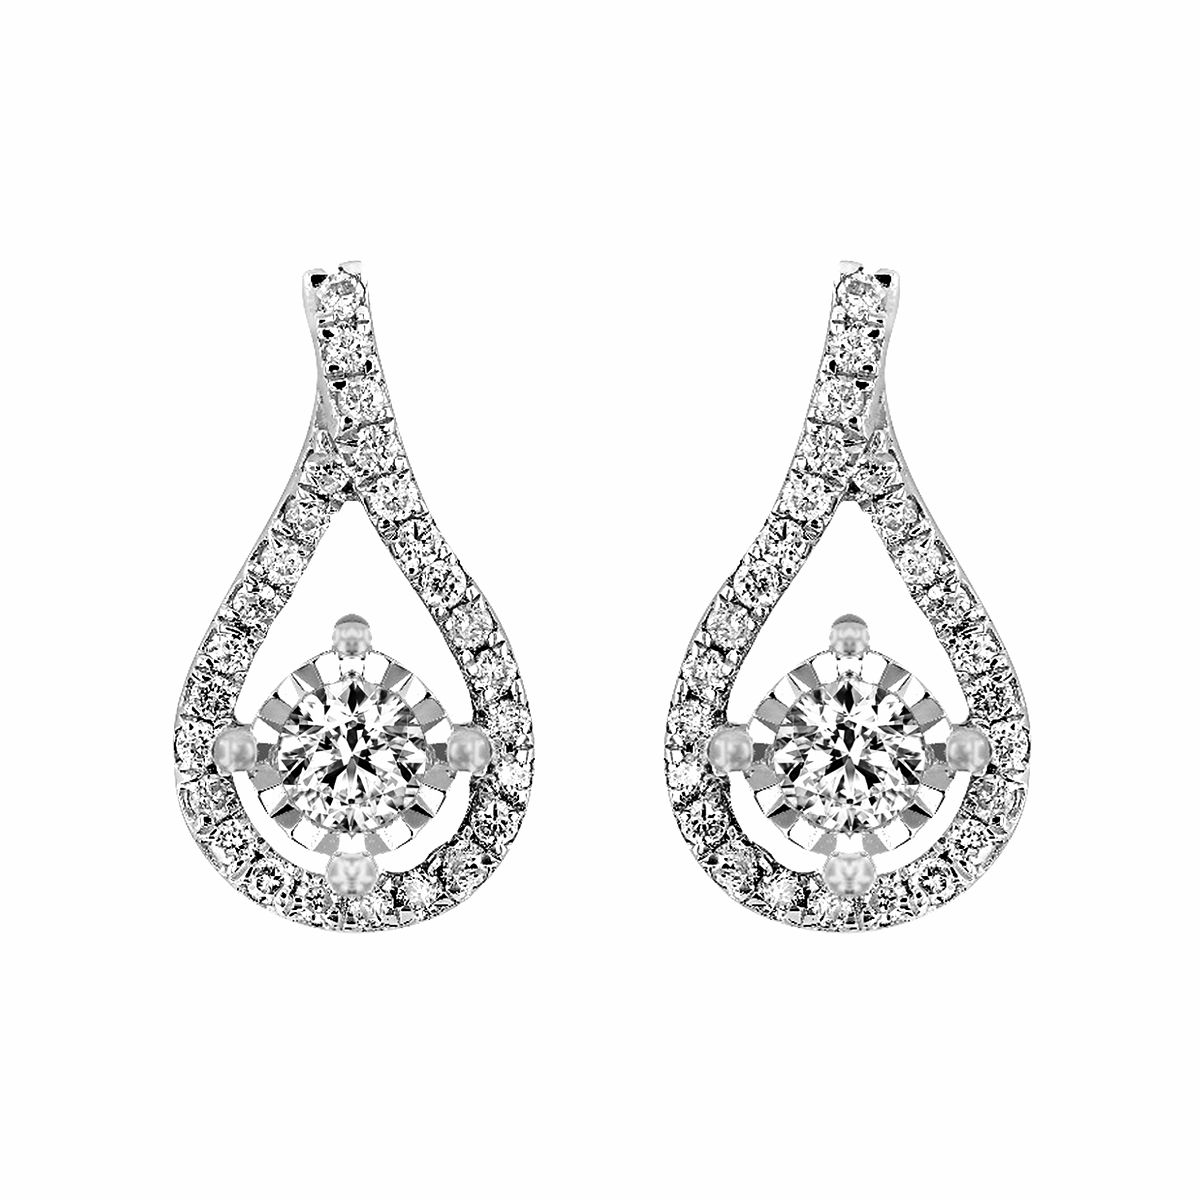 Radiance Collection Diamond & White Gold Peardrops Earrings | 18K White Gold